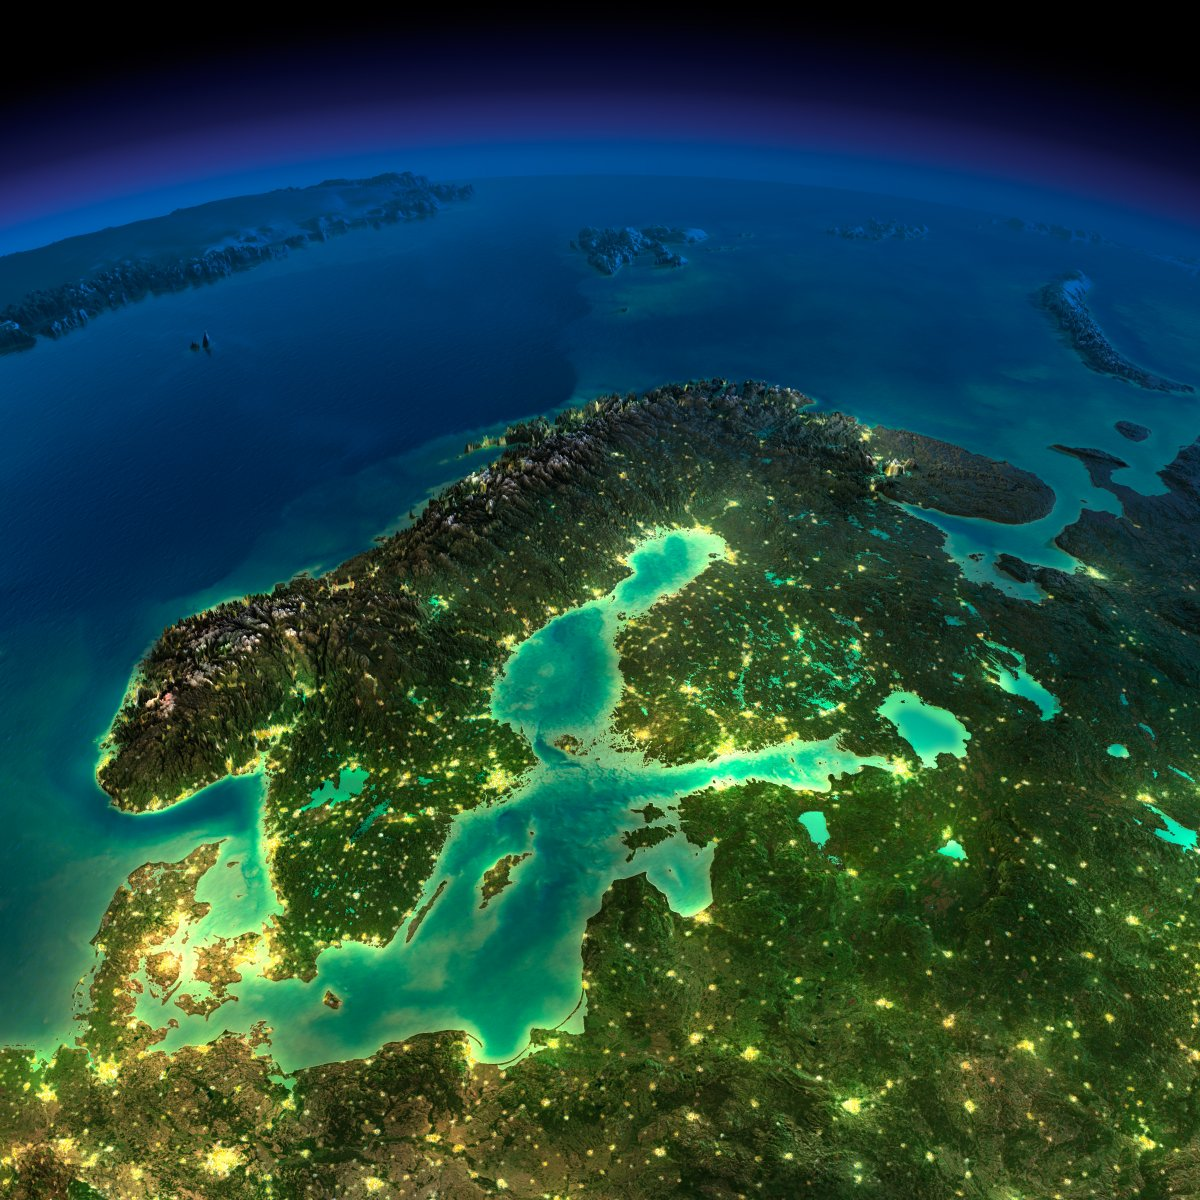 earth night photos europe by anton balazh